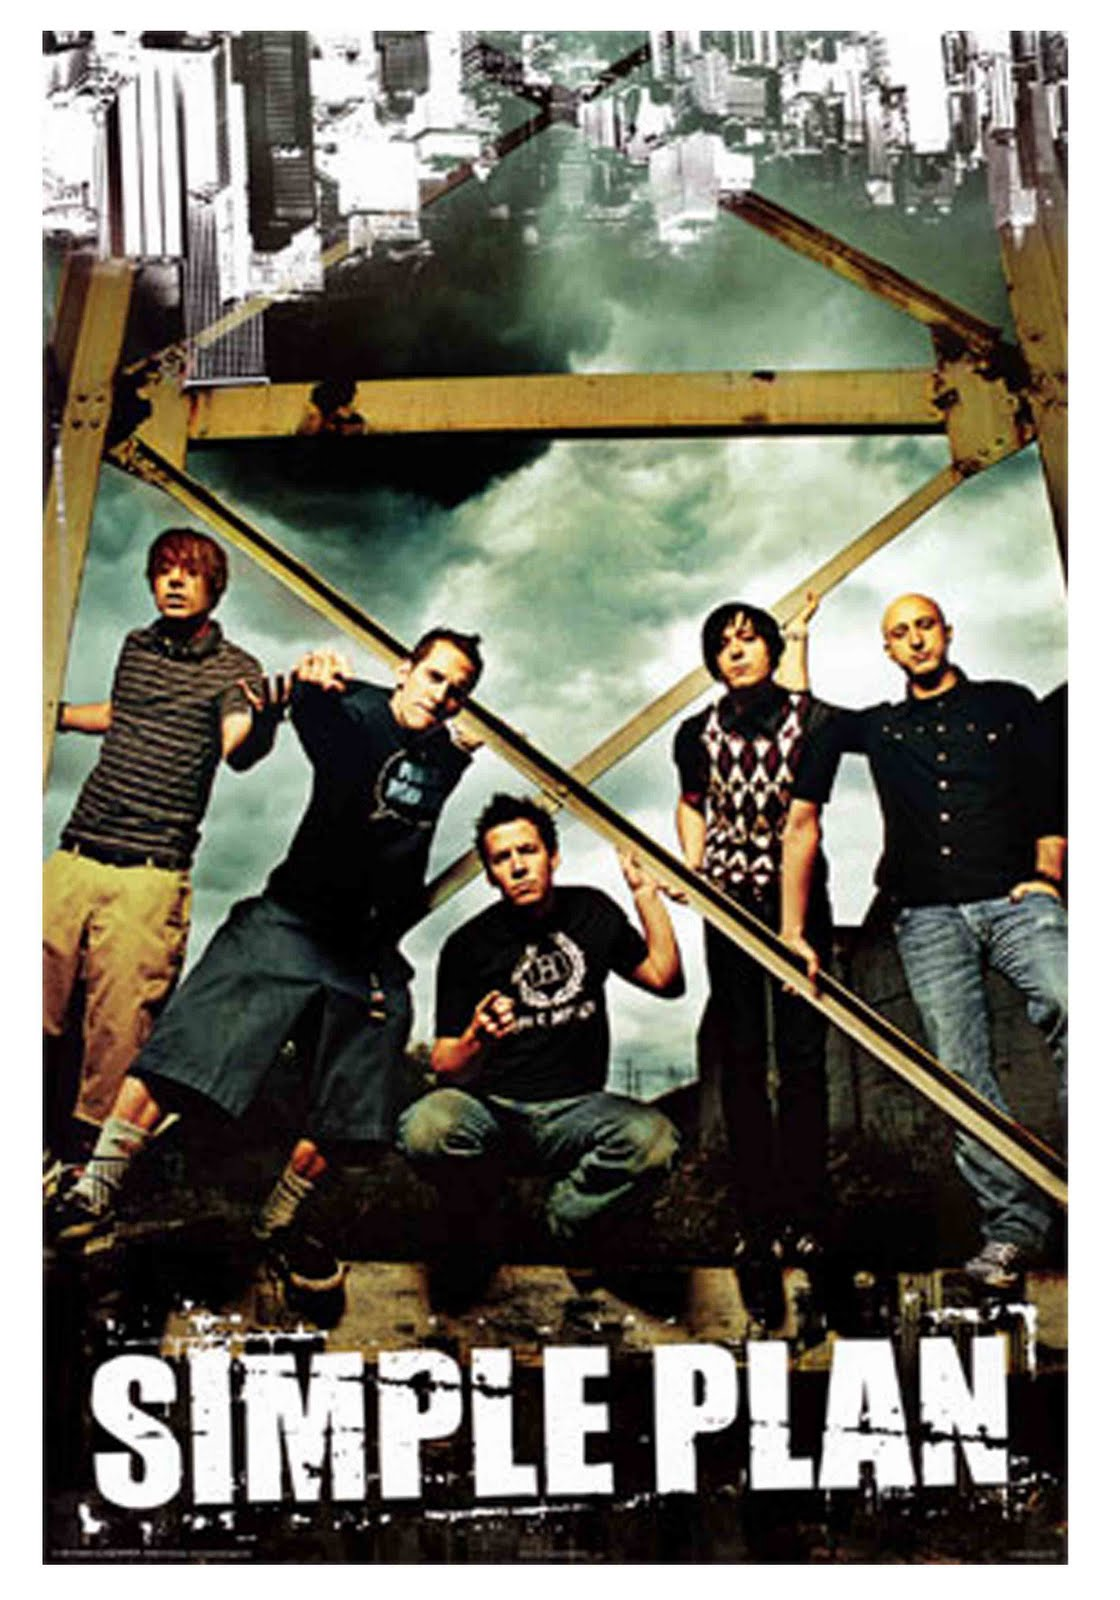 simple plan a french canadian pop punk David philippe desrosiers (born 29 august 1980) is a french canadian musician, who is best known as the bassist and backing vocalist for pop punk band simple plan.